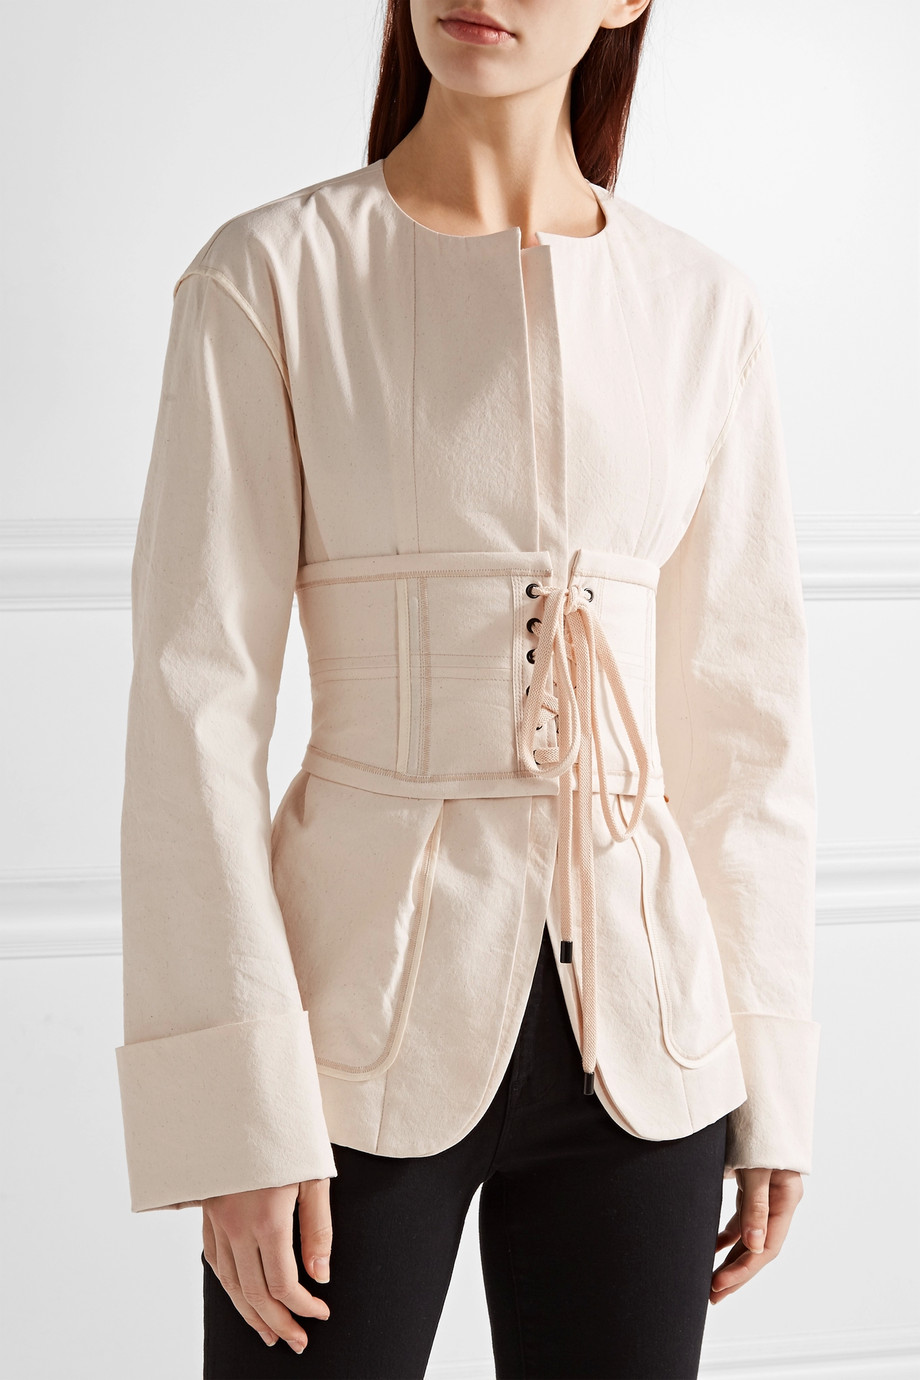 ISABEL MARANT Herese lace-up cotton-blend waist belt, £250